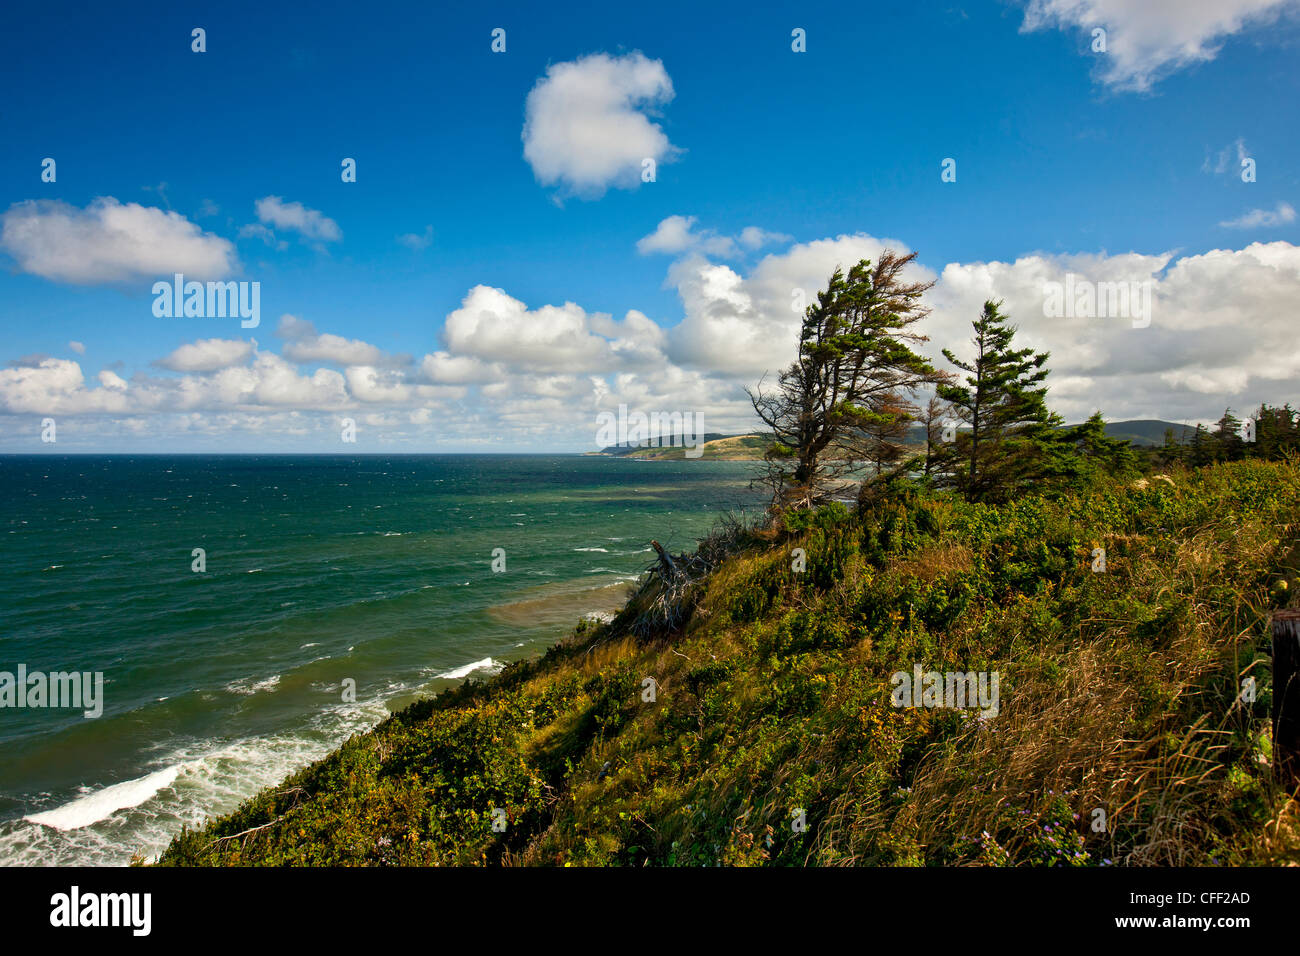 View from Little Mabou cliff towards Mabou Harbour mouth, Cape breton, Nova Scotia, Canada - Stock Image